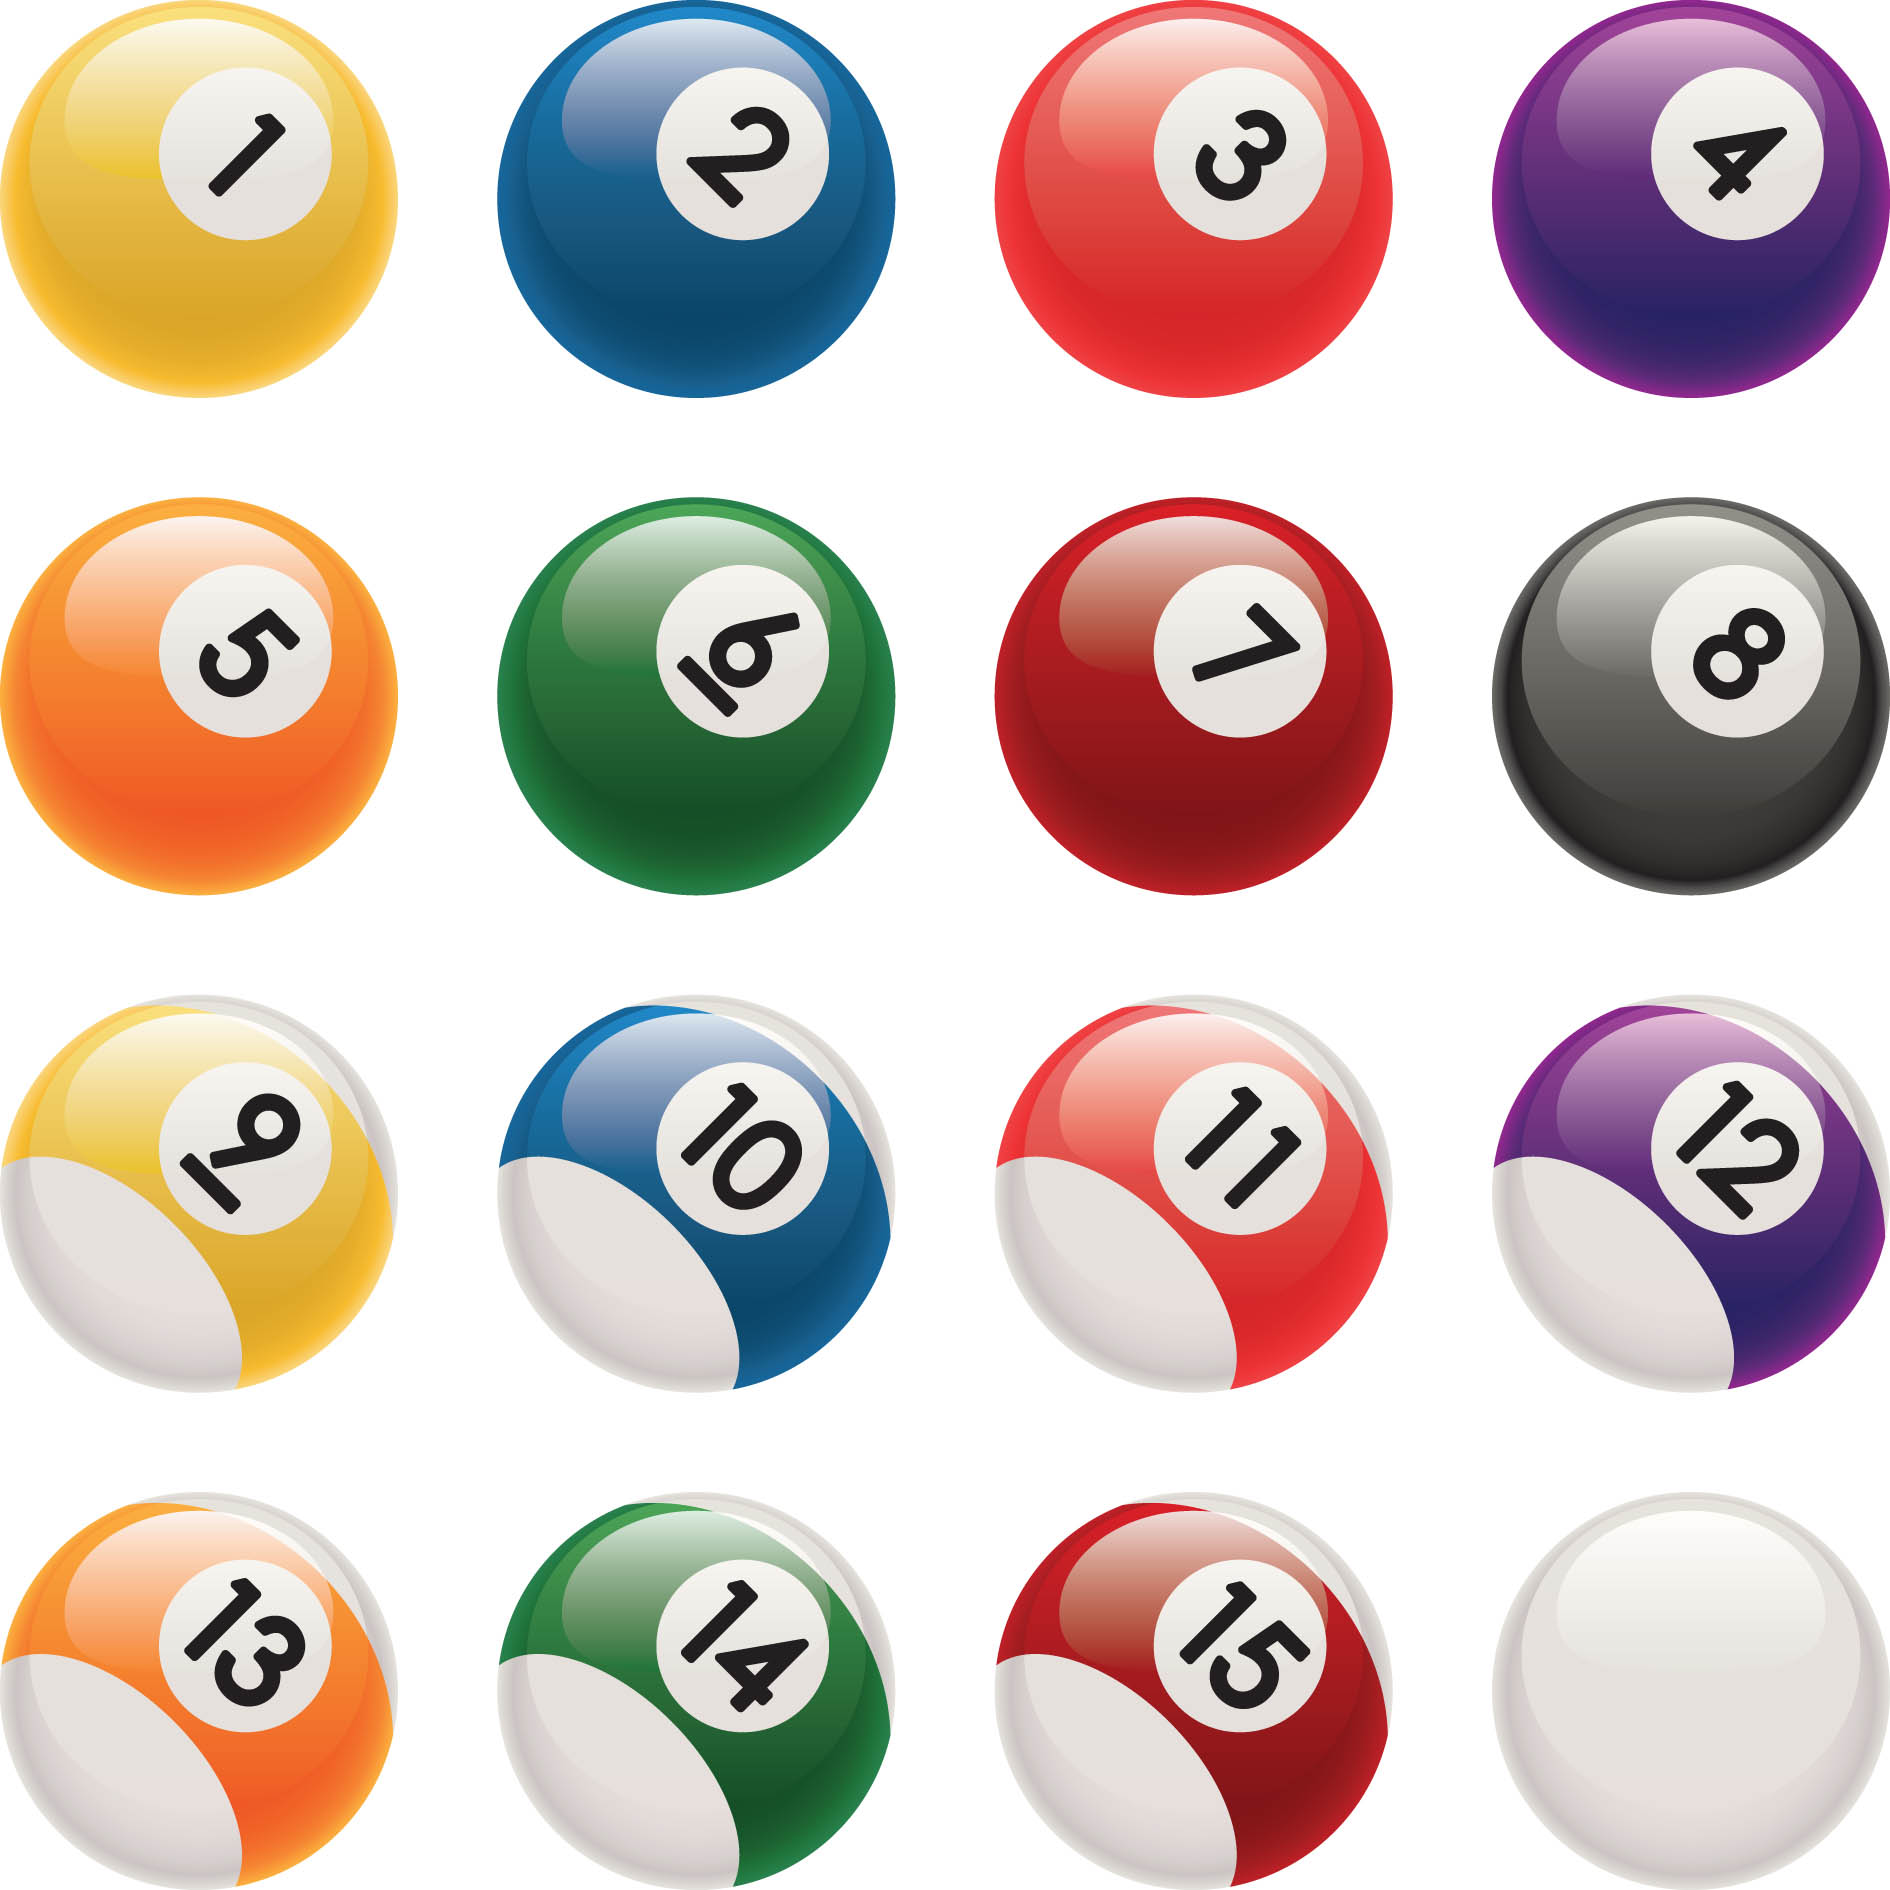 Billiard Ball clipart Billiards Black clipartclipart white ball